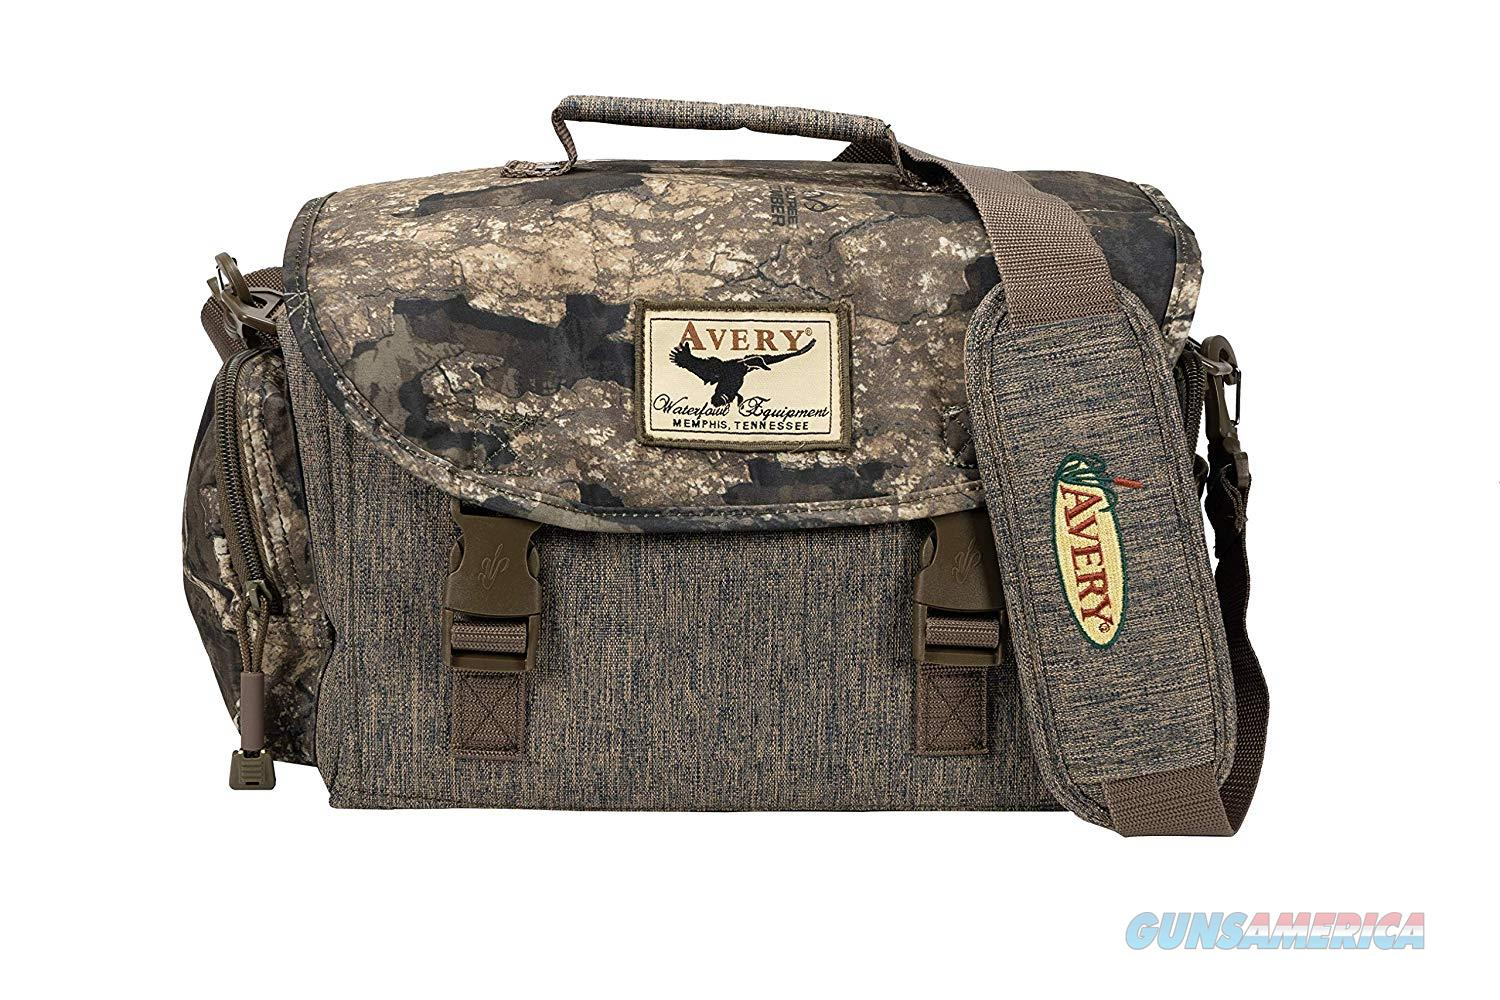 Avery Finisher 2.0 Blind Bag Timber NEW  Non-Guns > Hunting Clothing and Equipment > Ammo Pouches/Holders/Shell Bags